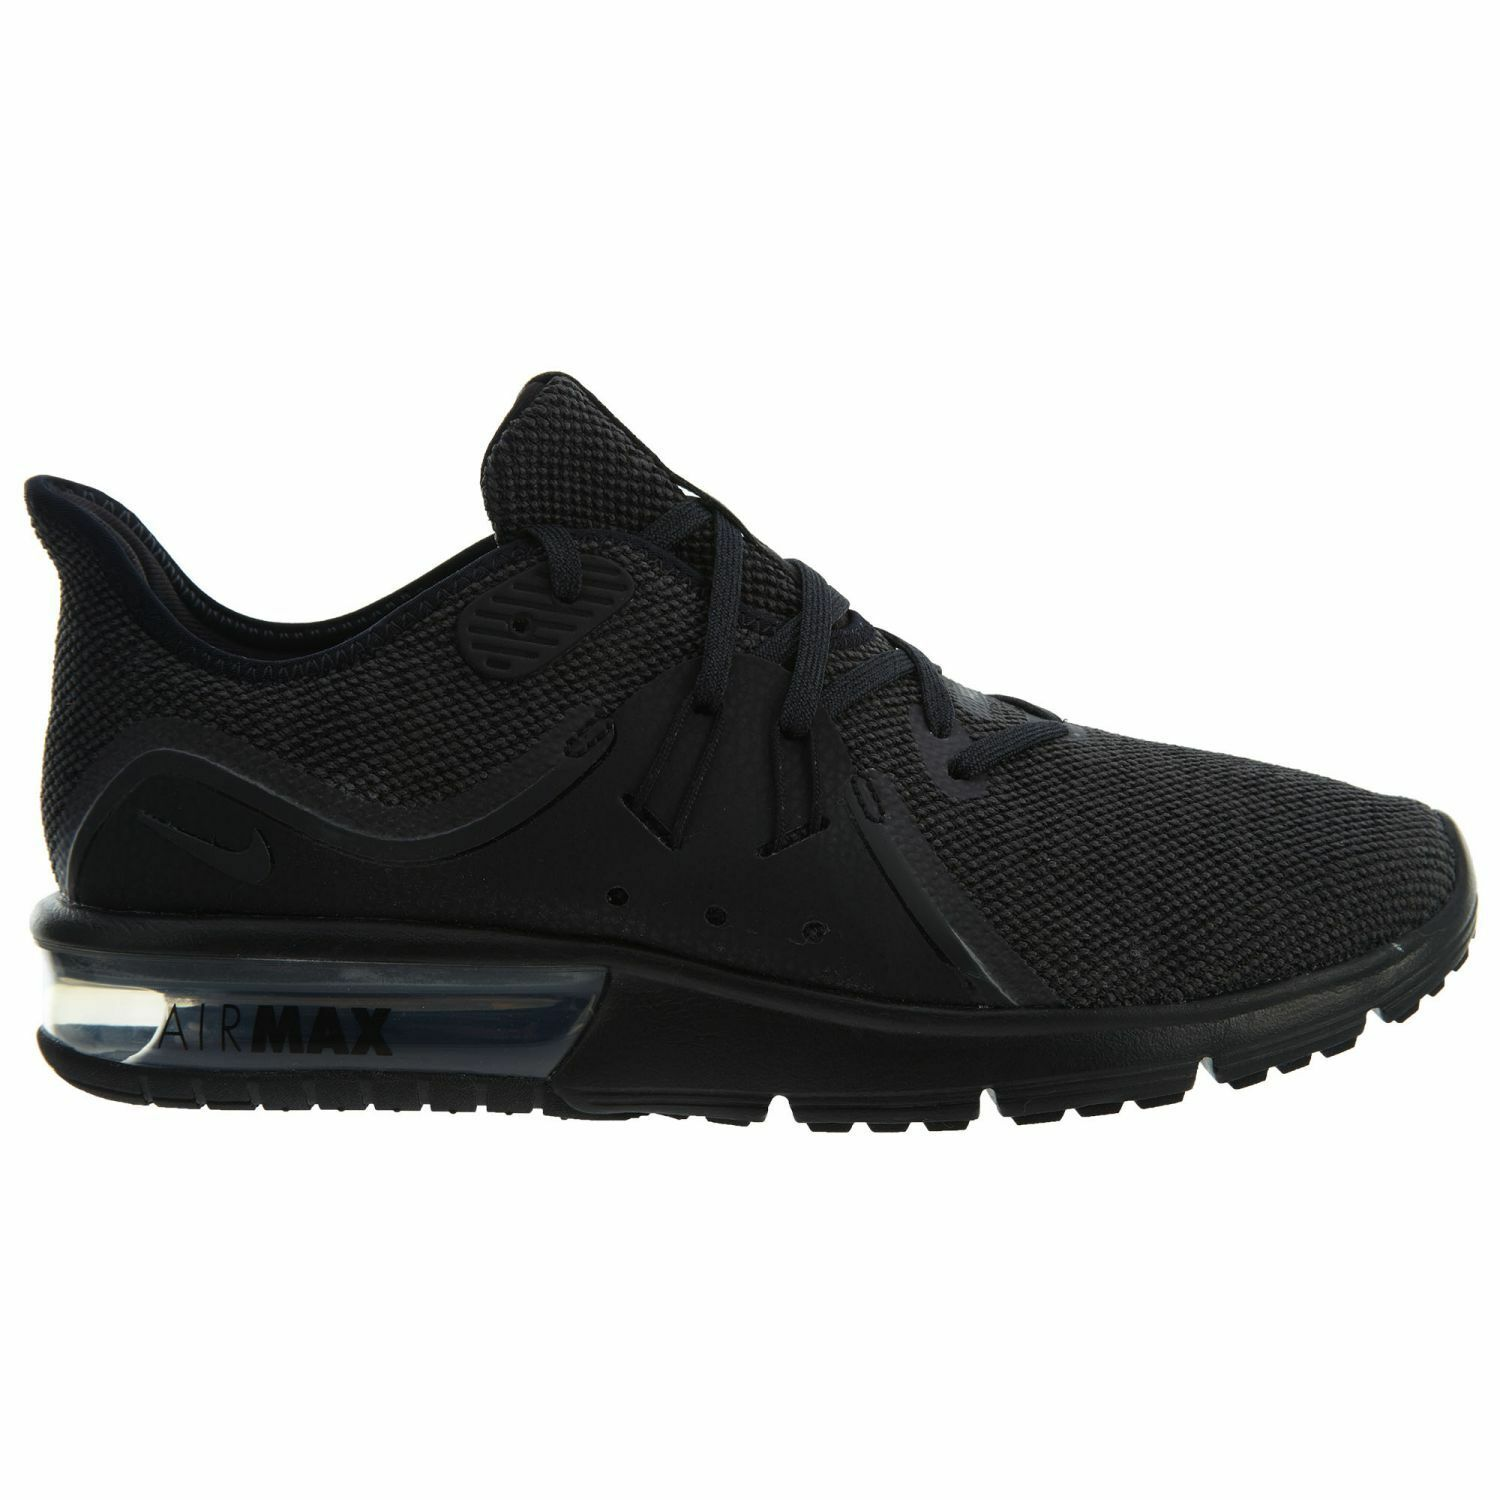 Nike Air Max Sequent 3 Mens 921694-010 Black Stretch Knit Running Shoes Comfortable Cheap women's shoes women's shoes